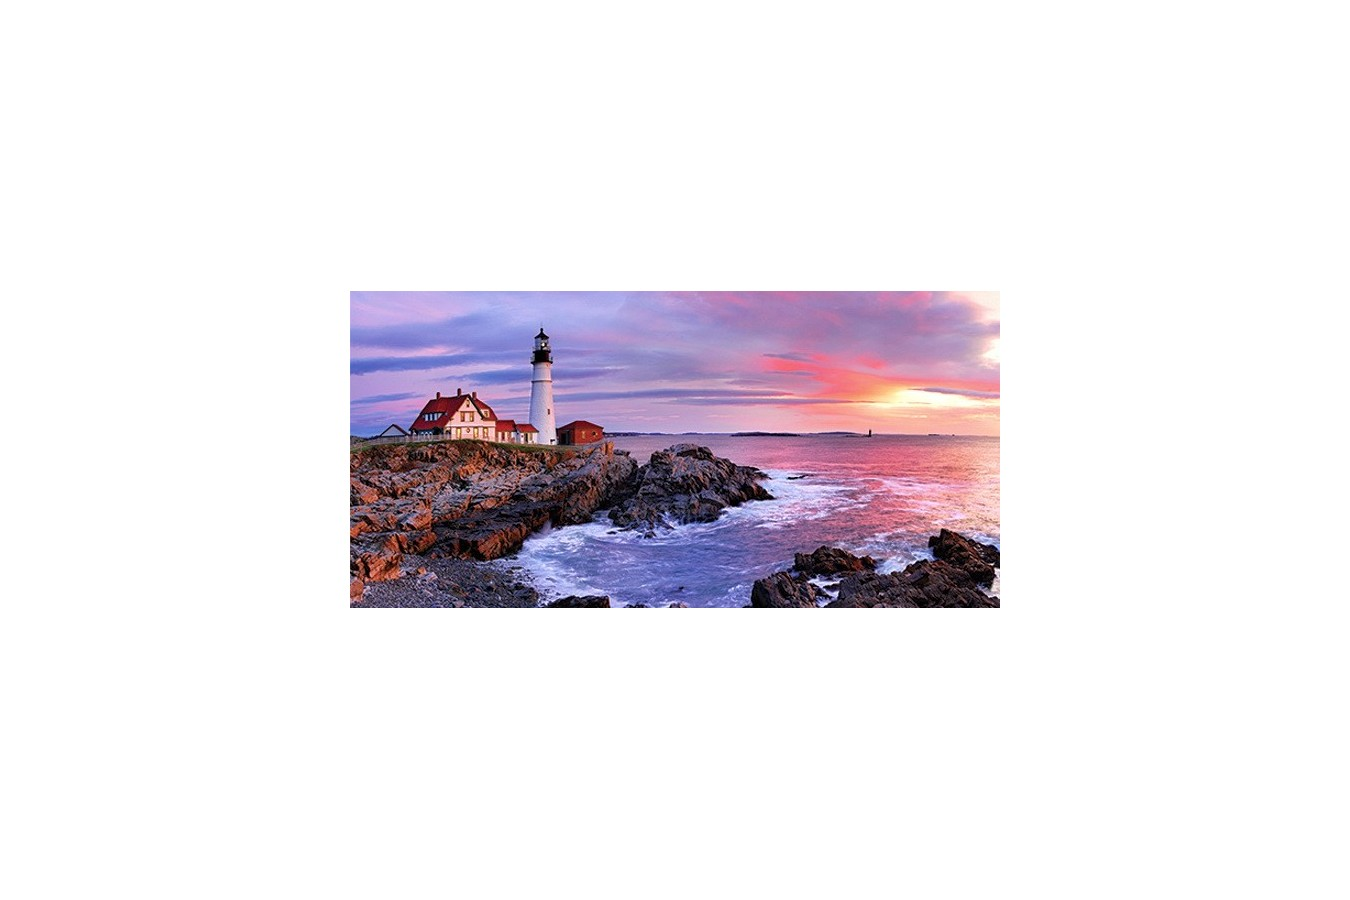 Puzzle Anatolian - Lighthouse at Portland Head, 1500 piese, panoramic (3787)